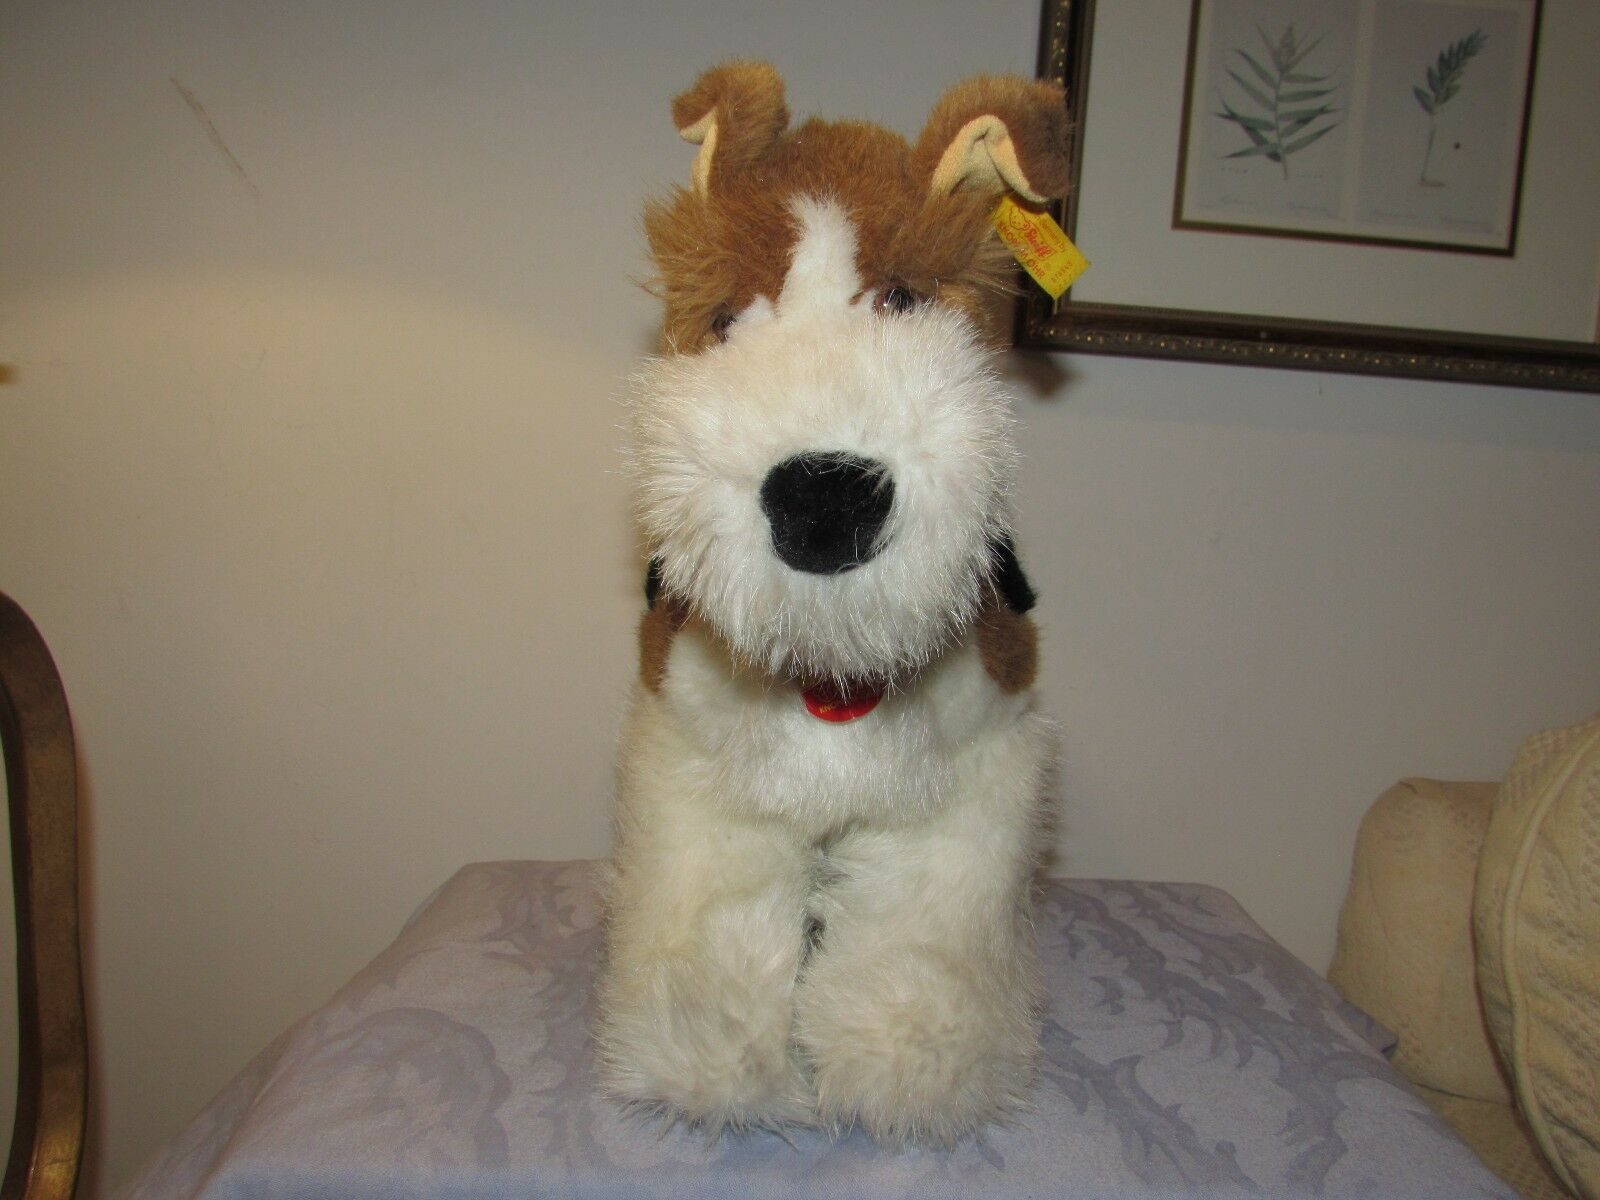 VINTAGE GERMANY STEIFF GERMANY VINTAGE BELLO FOX TERRIER DOG 43 CM 17 IN BUTTON TAGS 078545 270f30